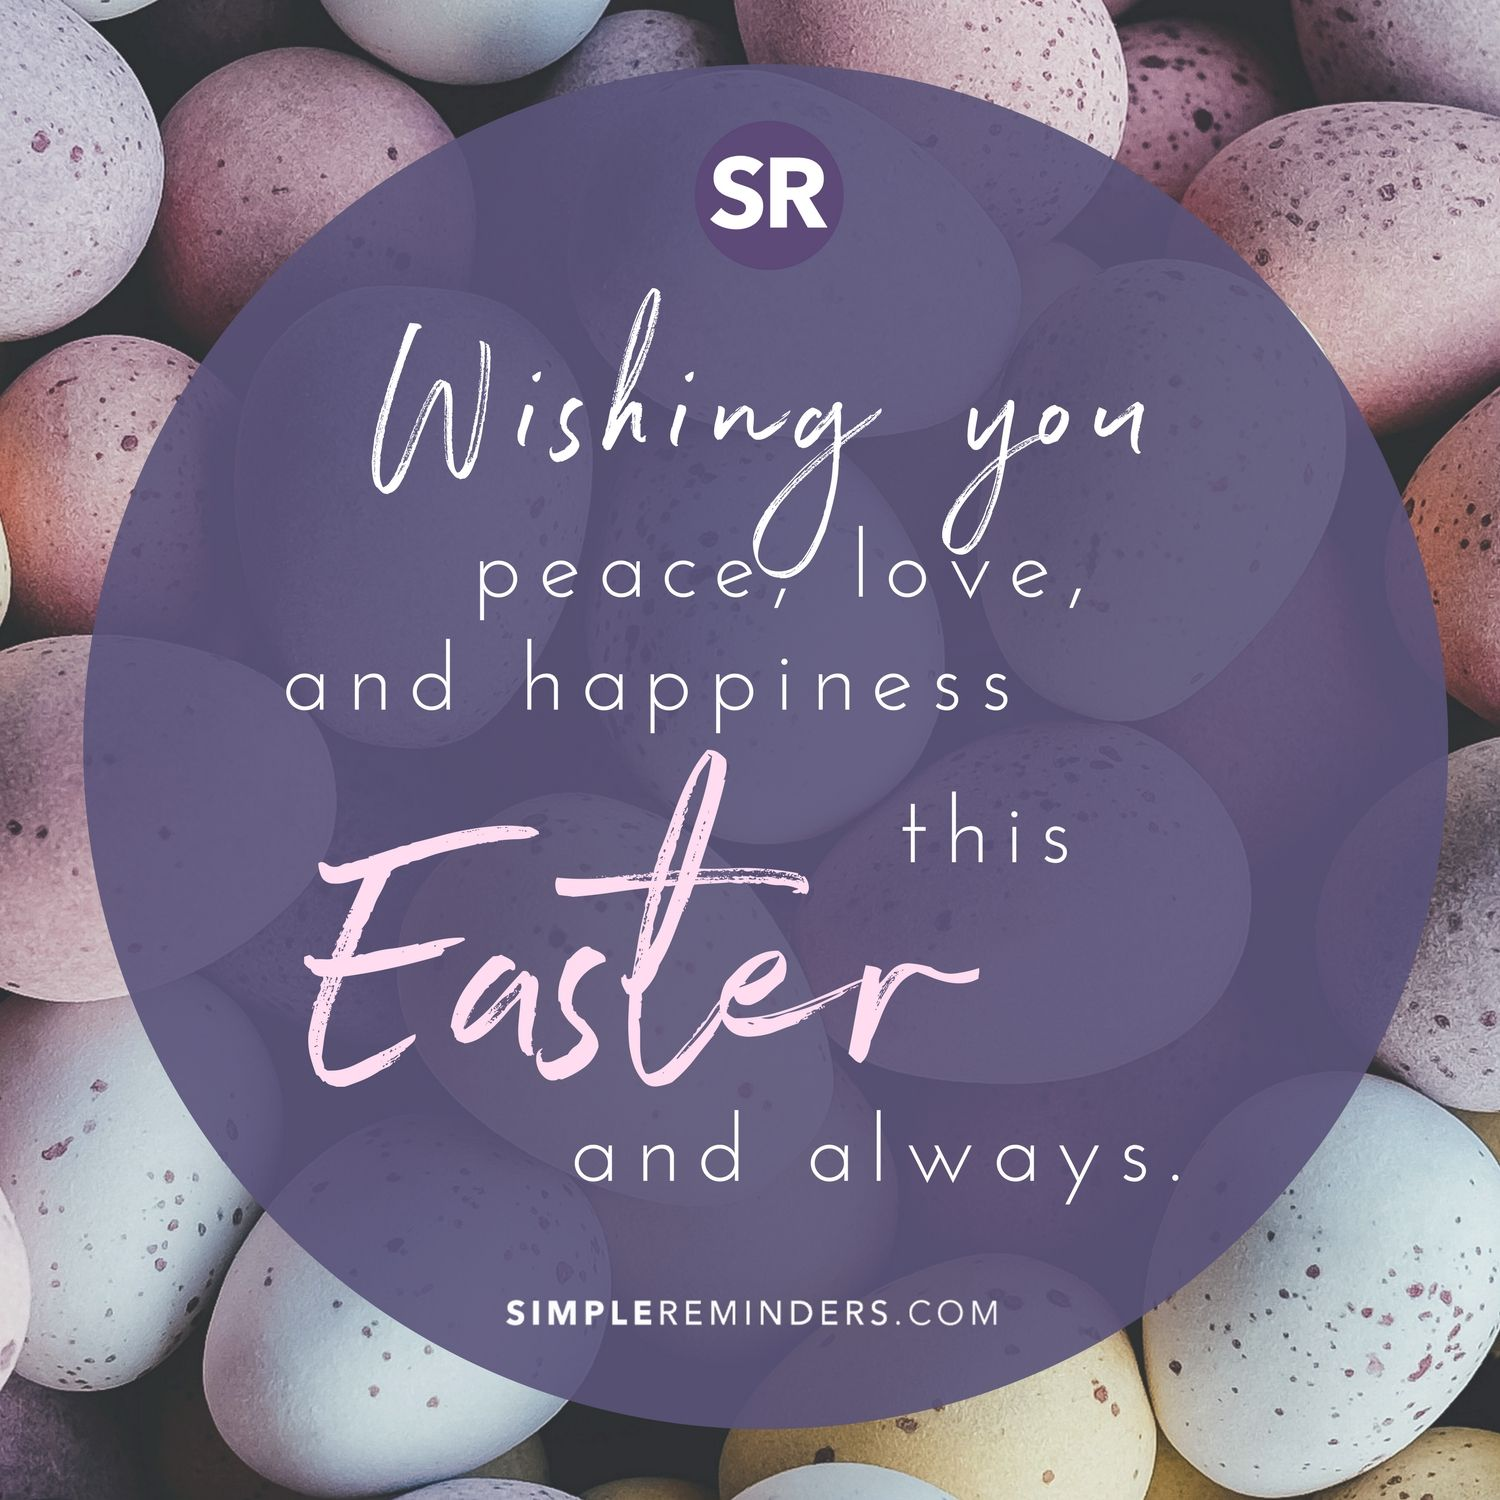 Wishing You Peace Love And Happiness This Easter And Always Simplereminders Quotes Wish Peace Love Happiness A Easter Quotes Simple Reminders Easter